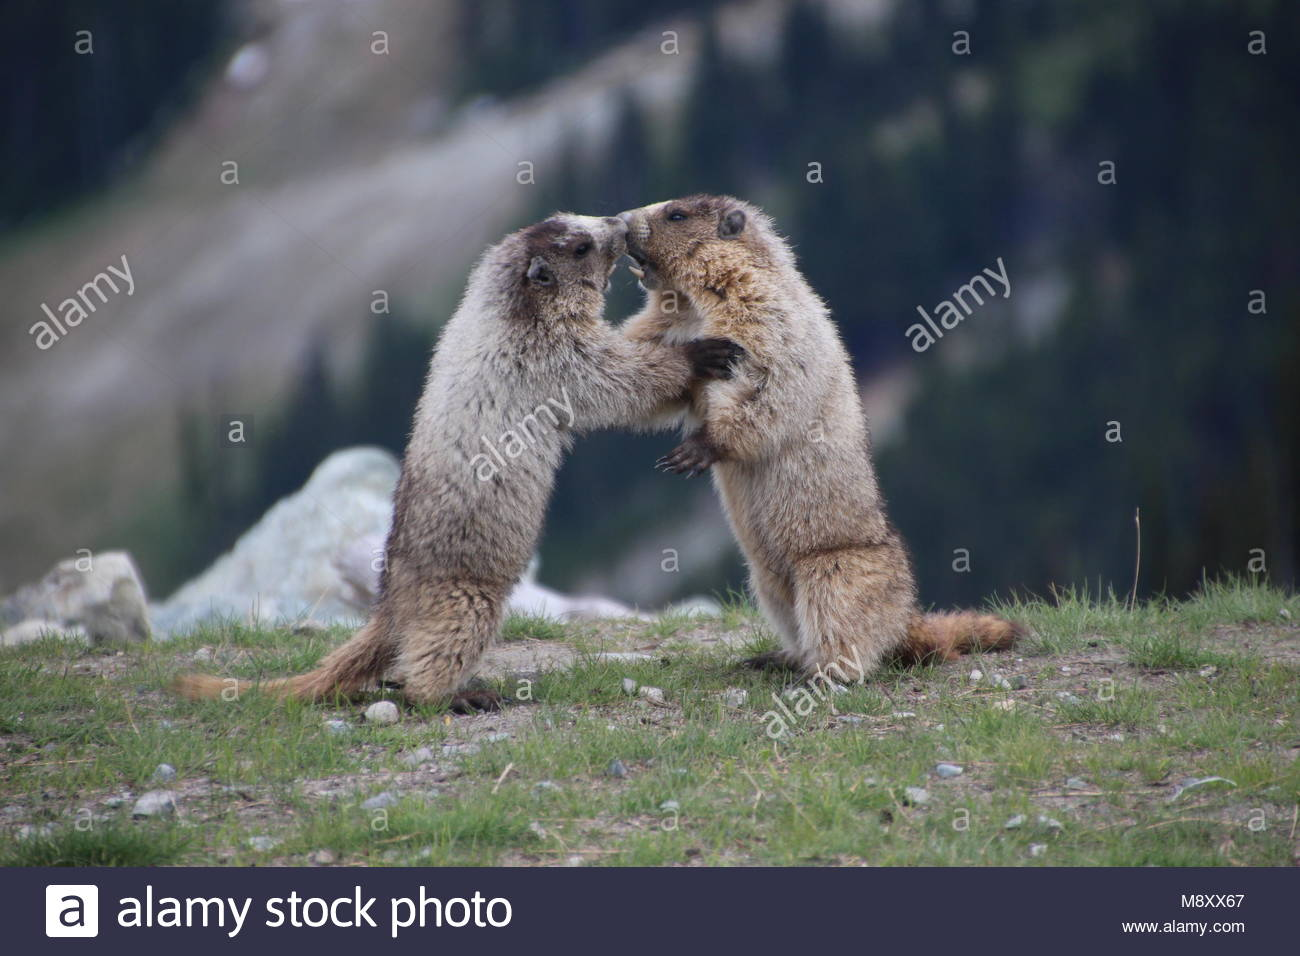 Close up of two Marmots fighting. - Stock Image